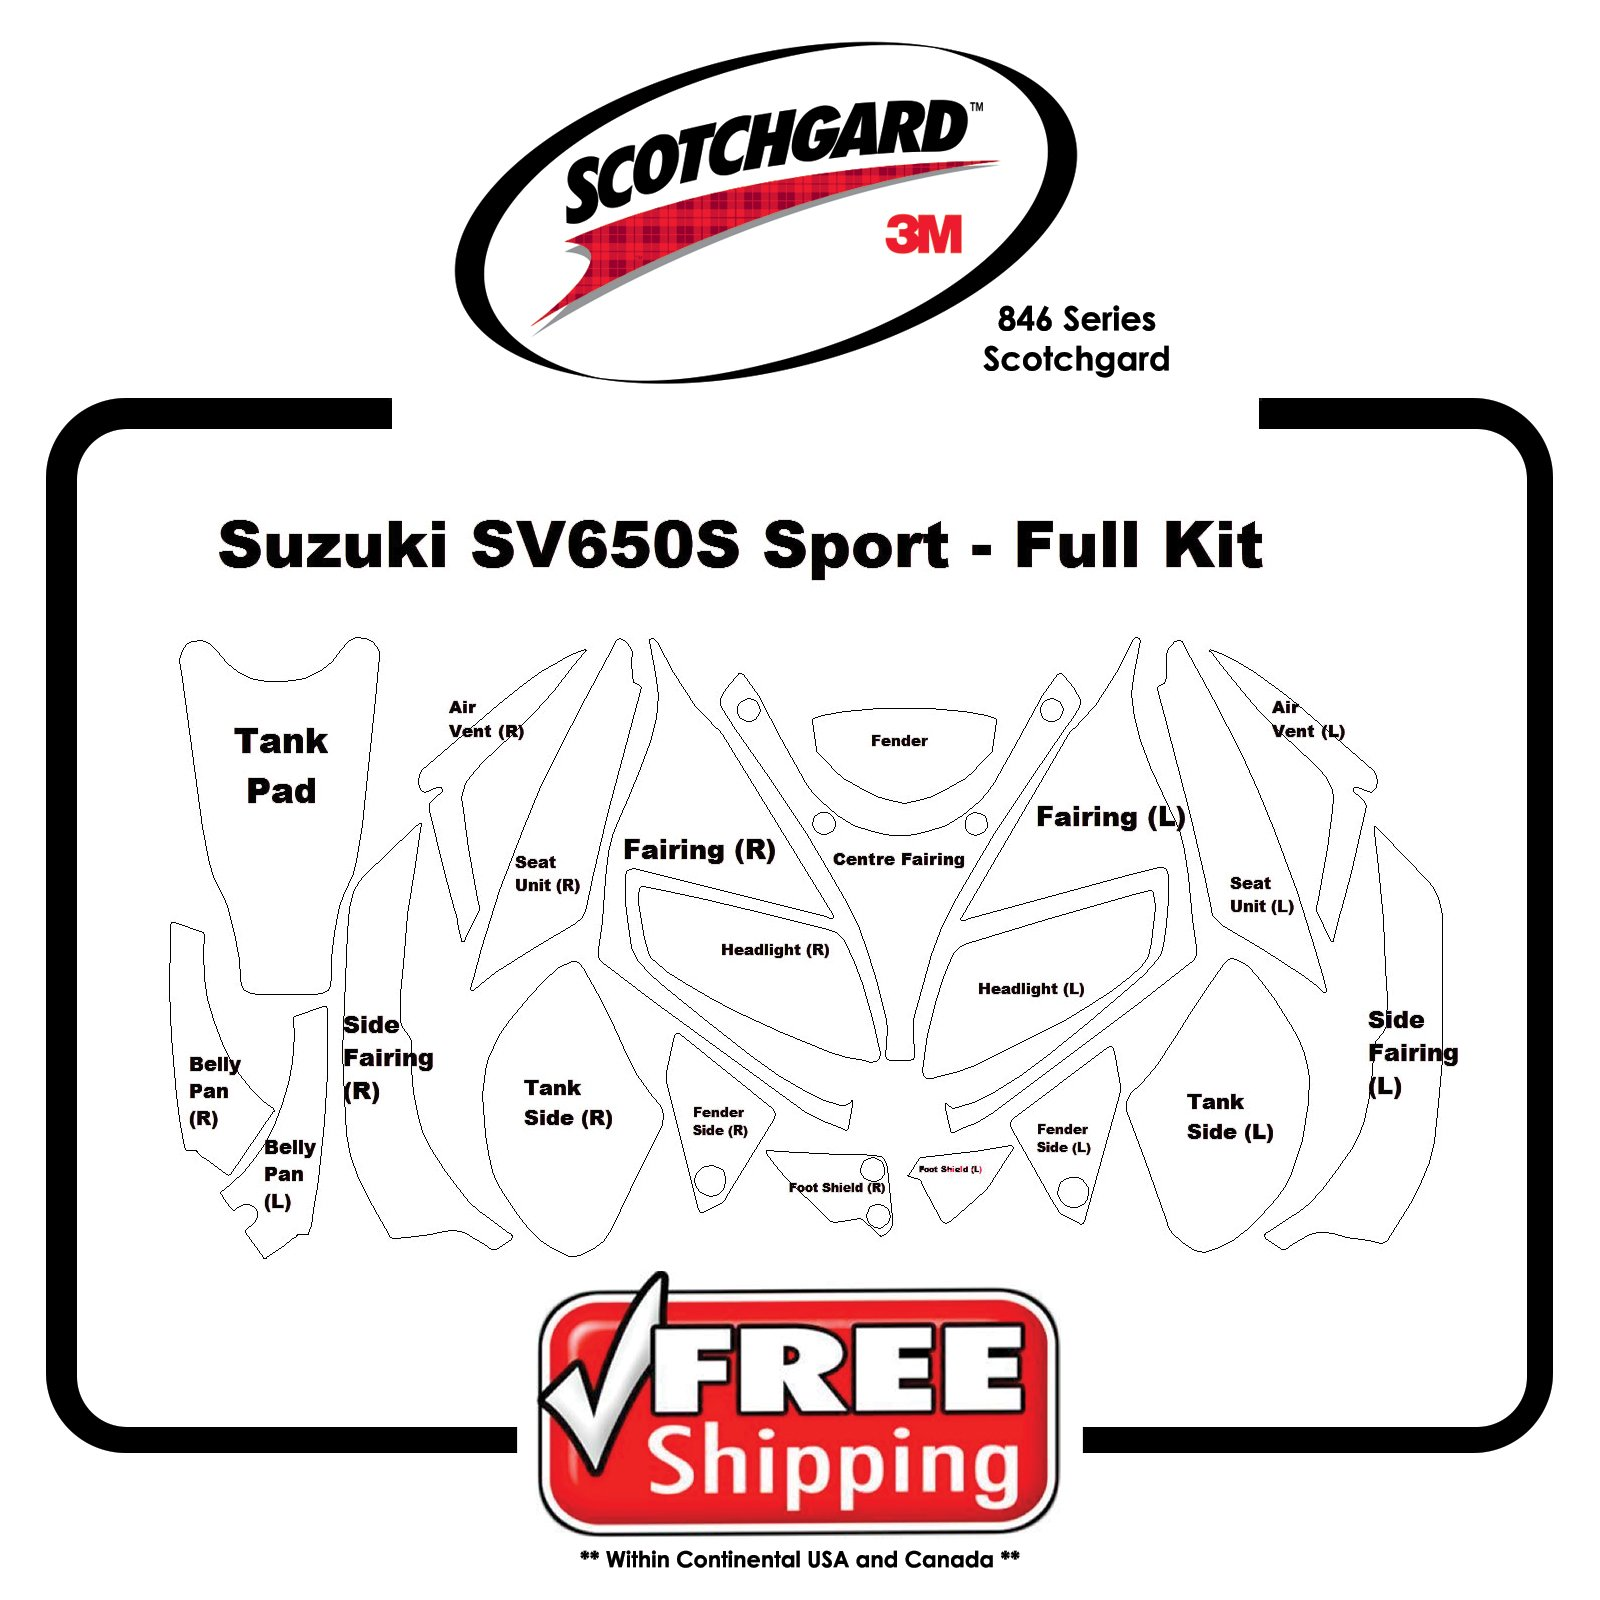 Kit for Suzuki SV 650 S Sport 06 - 3M 846 Series Scotchgard Paint Protection